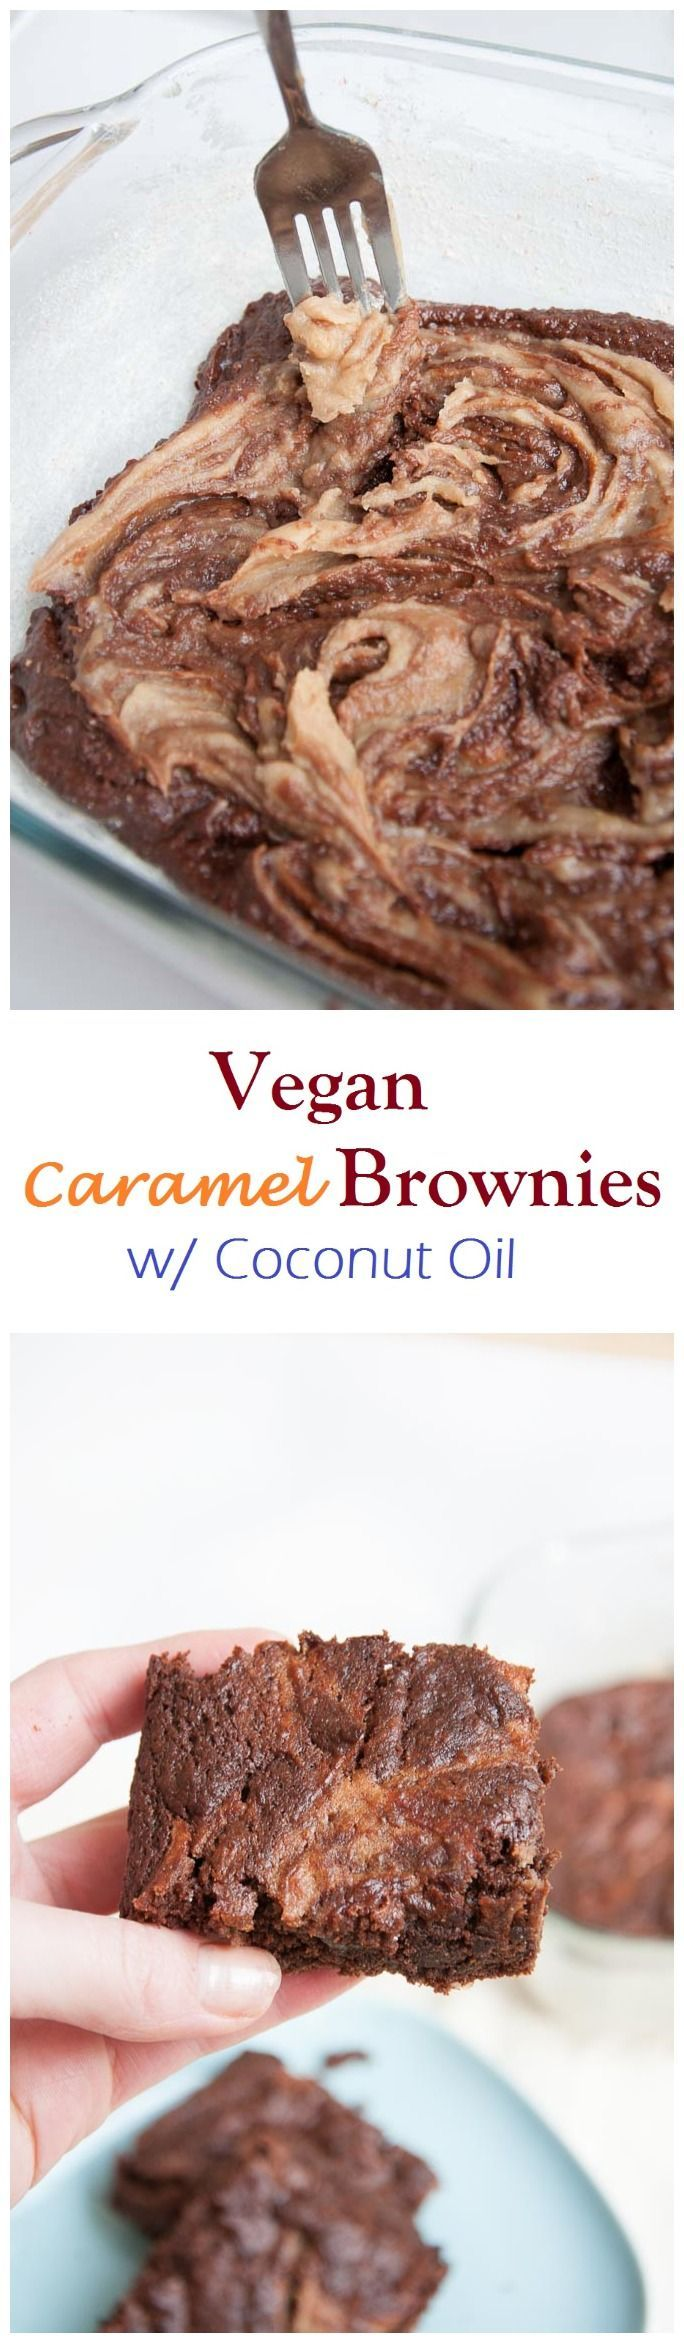 8 Ingredient Vegan Caramel Brownies Recipe w/ Coconut Oil and Homemade Raw Date Caramel | use gf flour